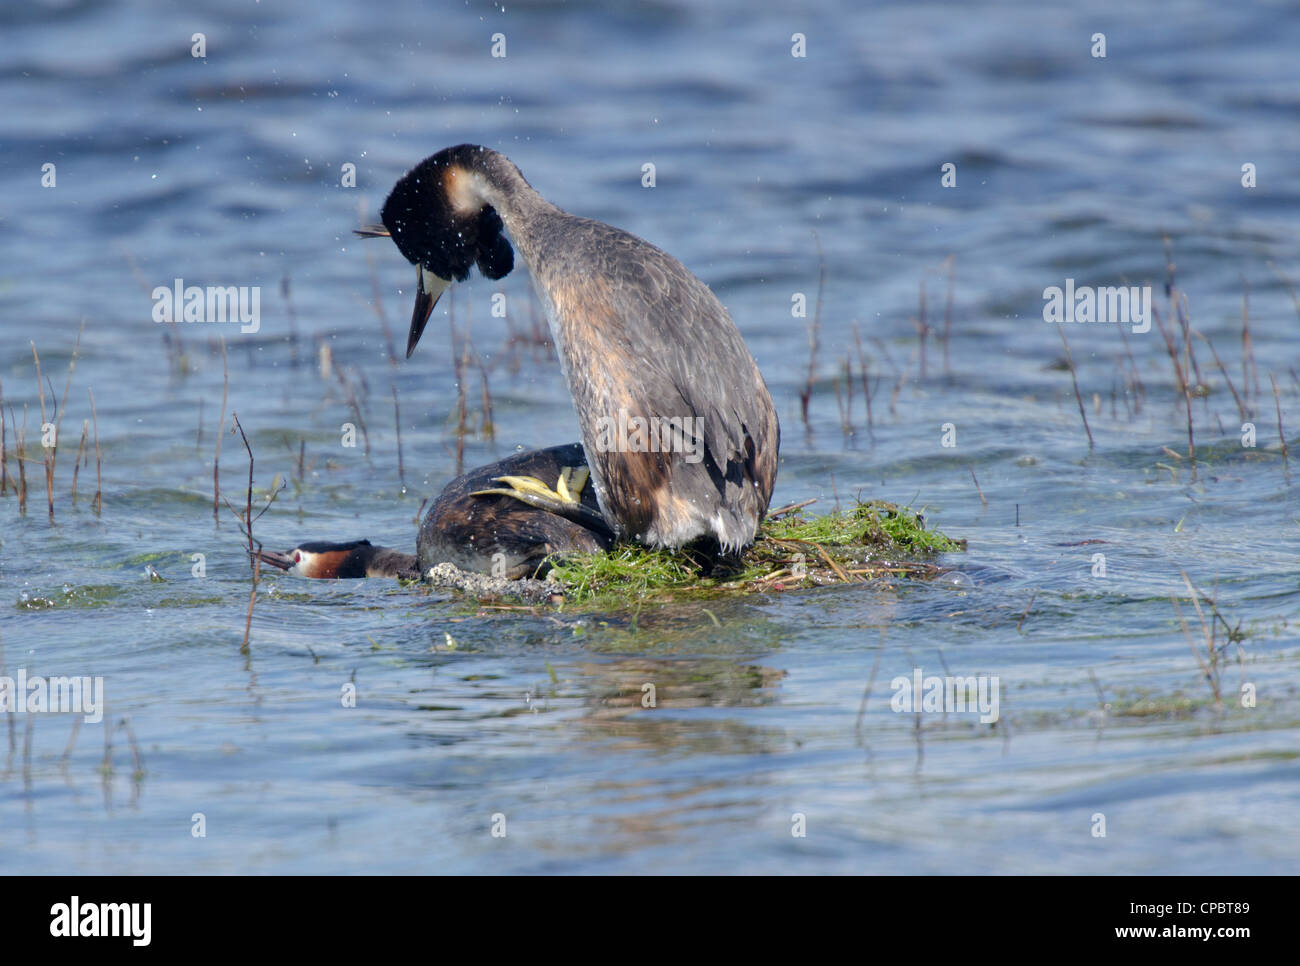 Podiceps cristatus, Pair of Great Crested Grebes mating on nest Stock Photo